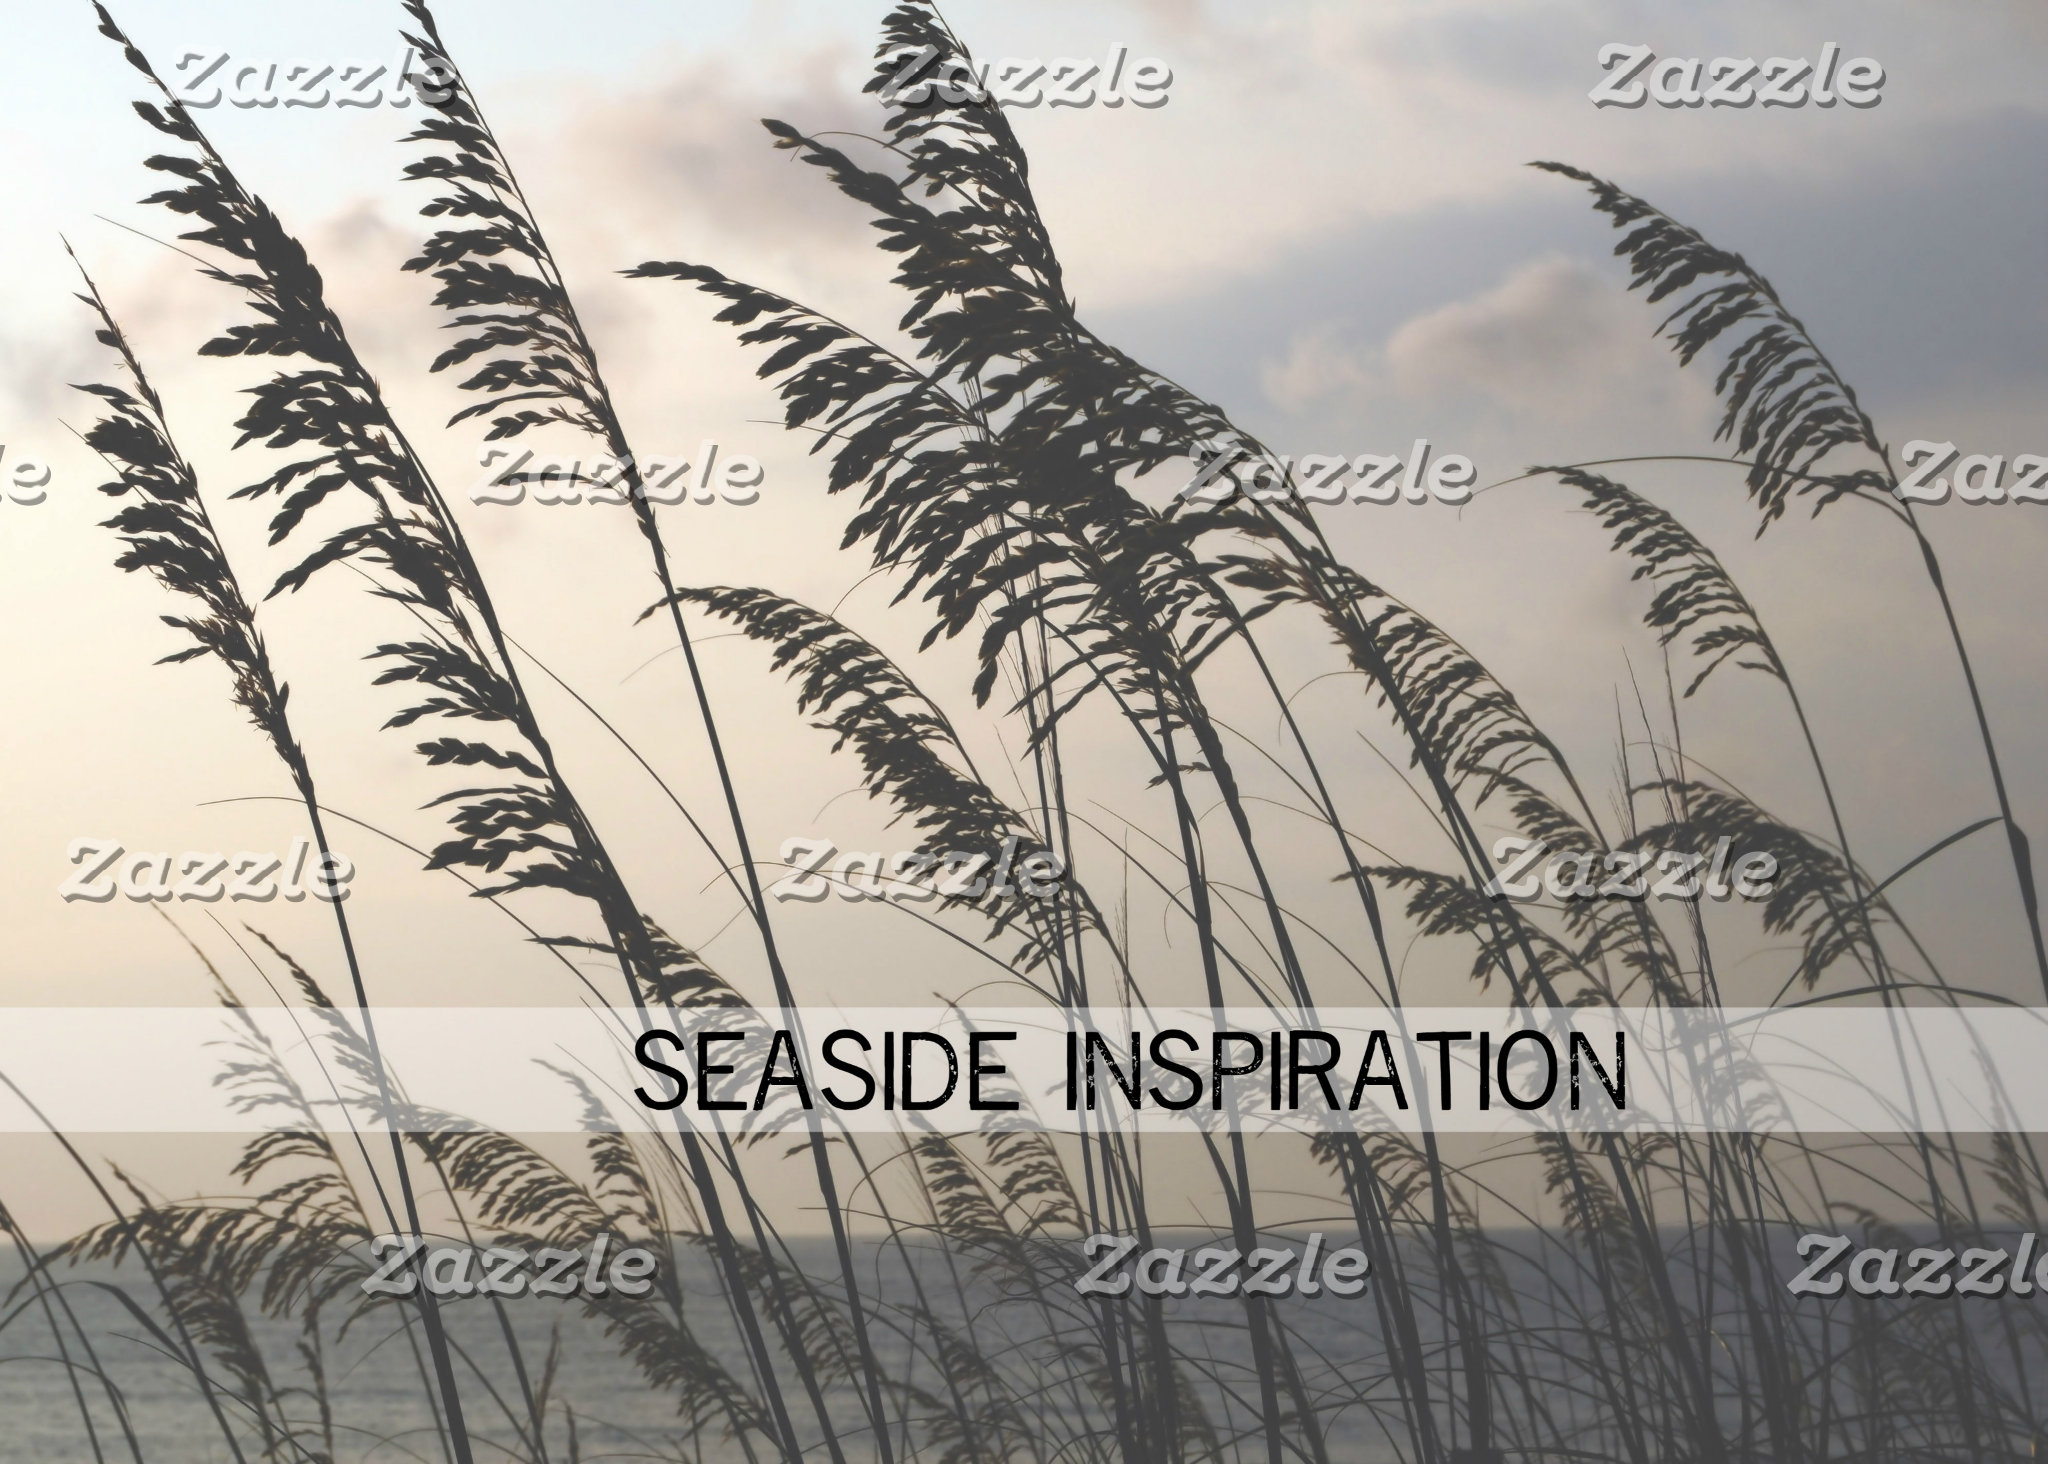 SEASIDE INSPIRATION